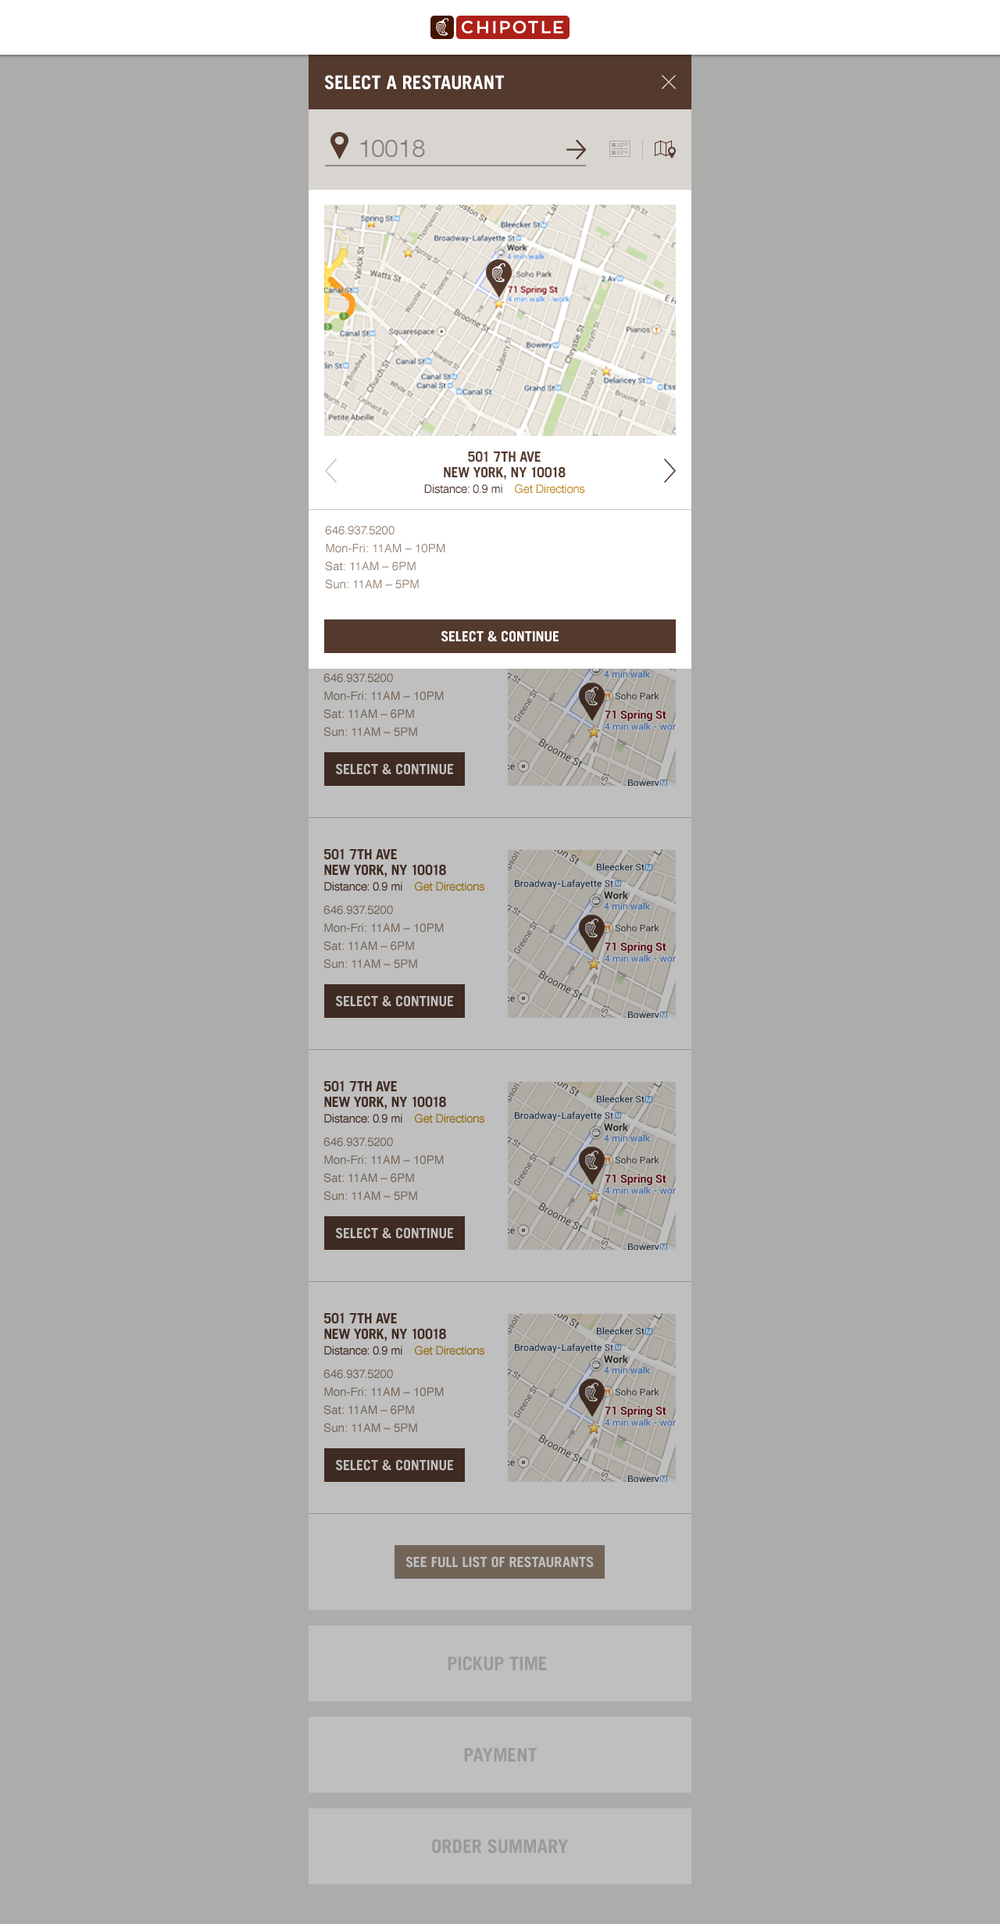 4a_ROO_GroupOrder_Checkout_Full_Restaurant_Modals_Map_DT-Card-Size.png